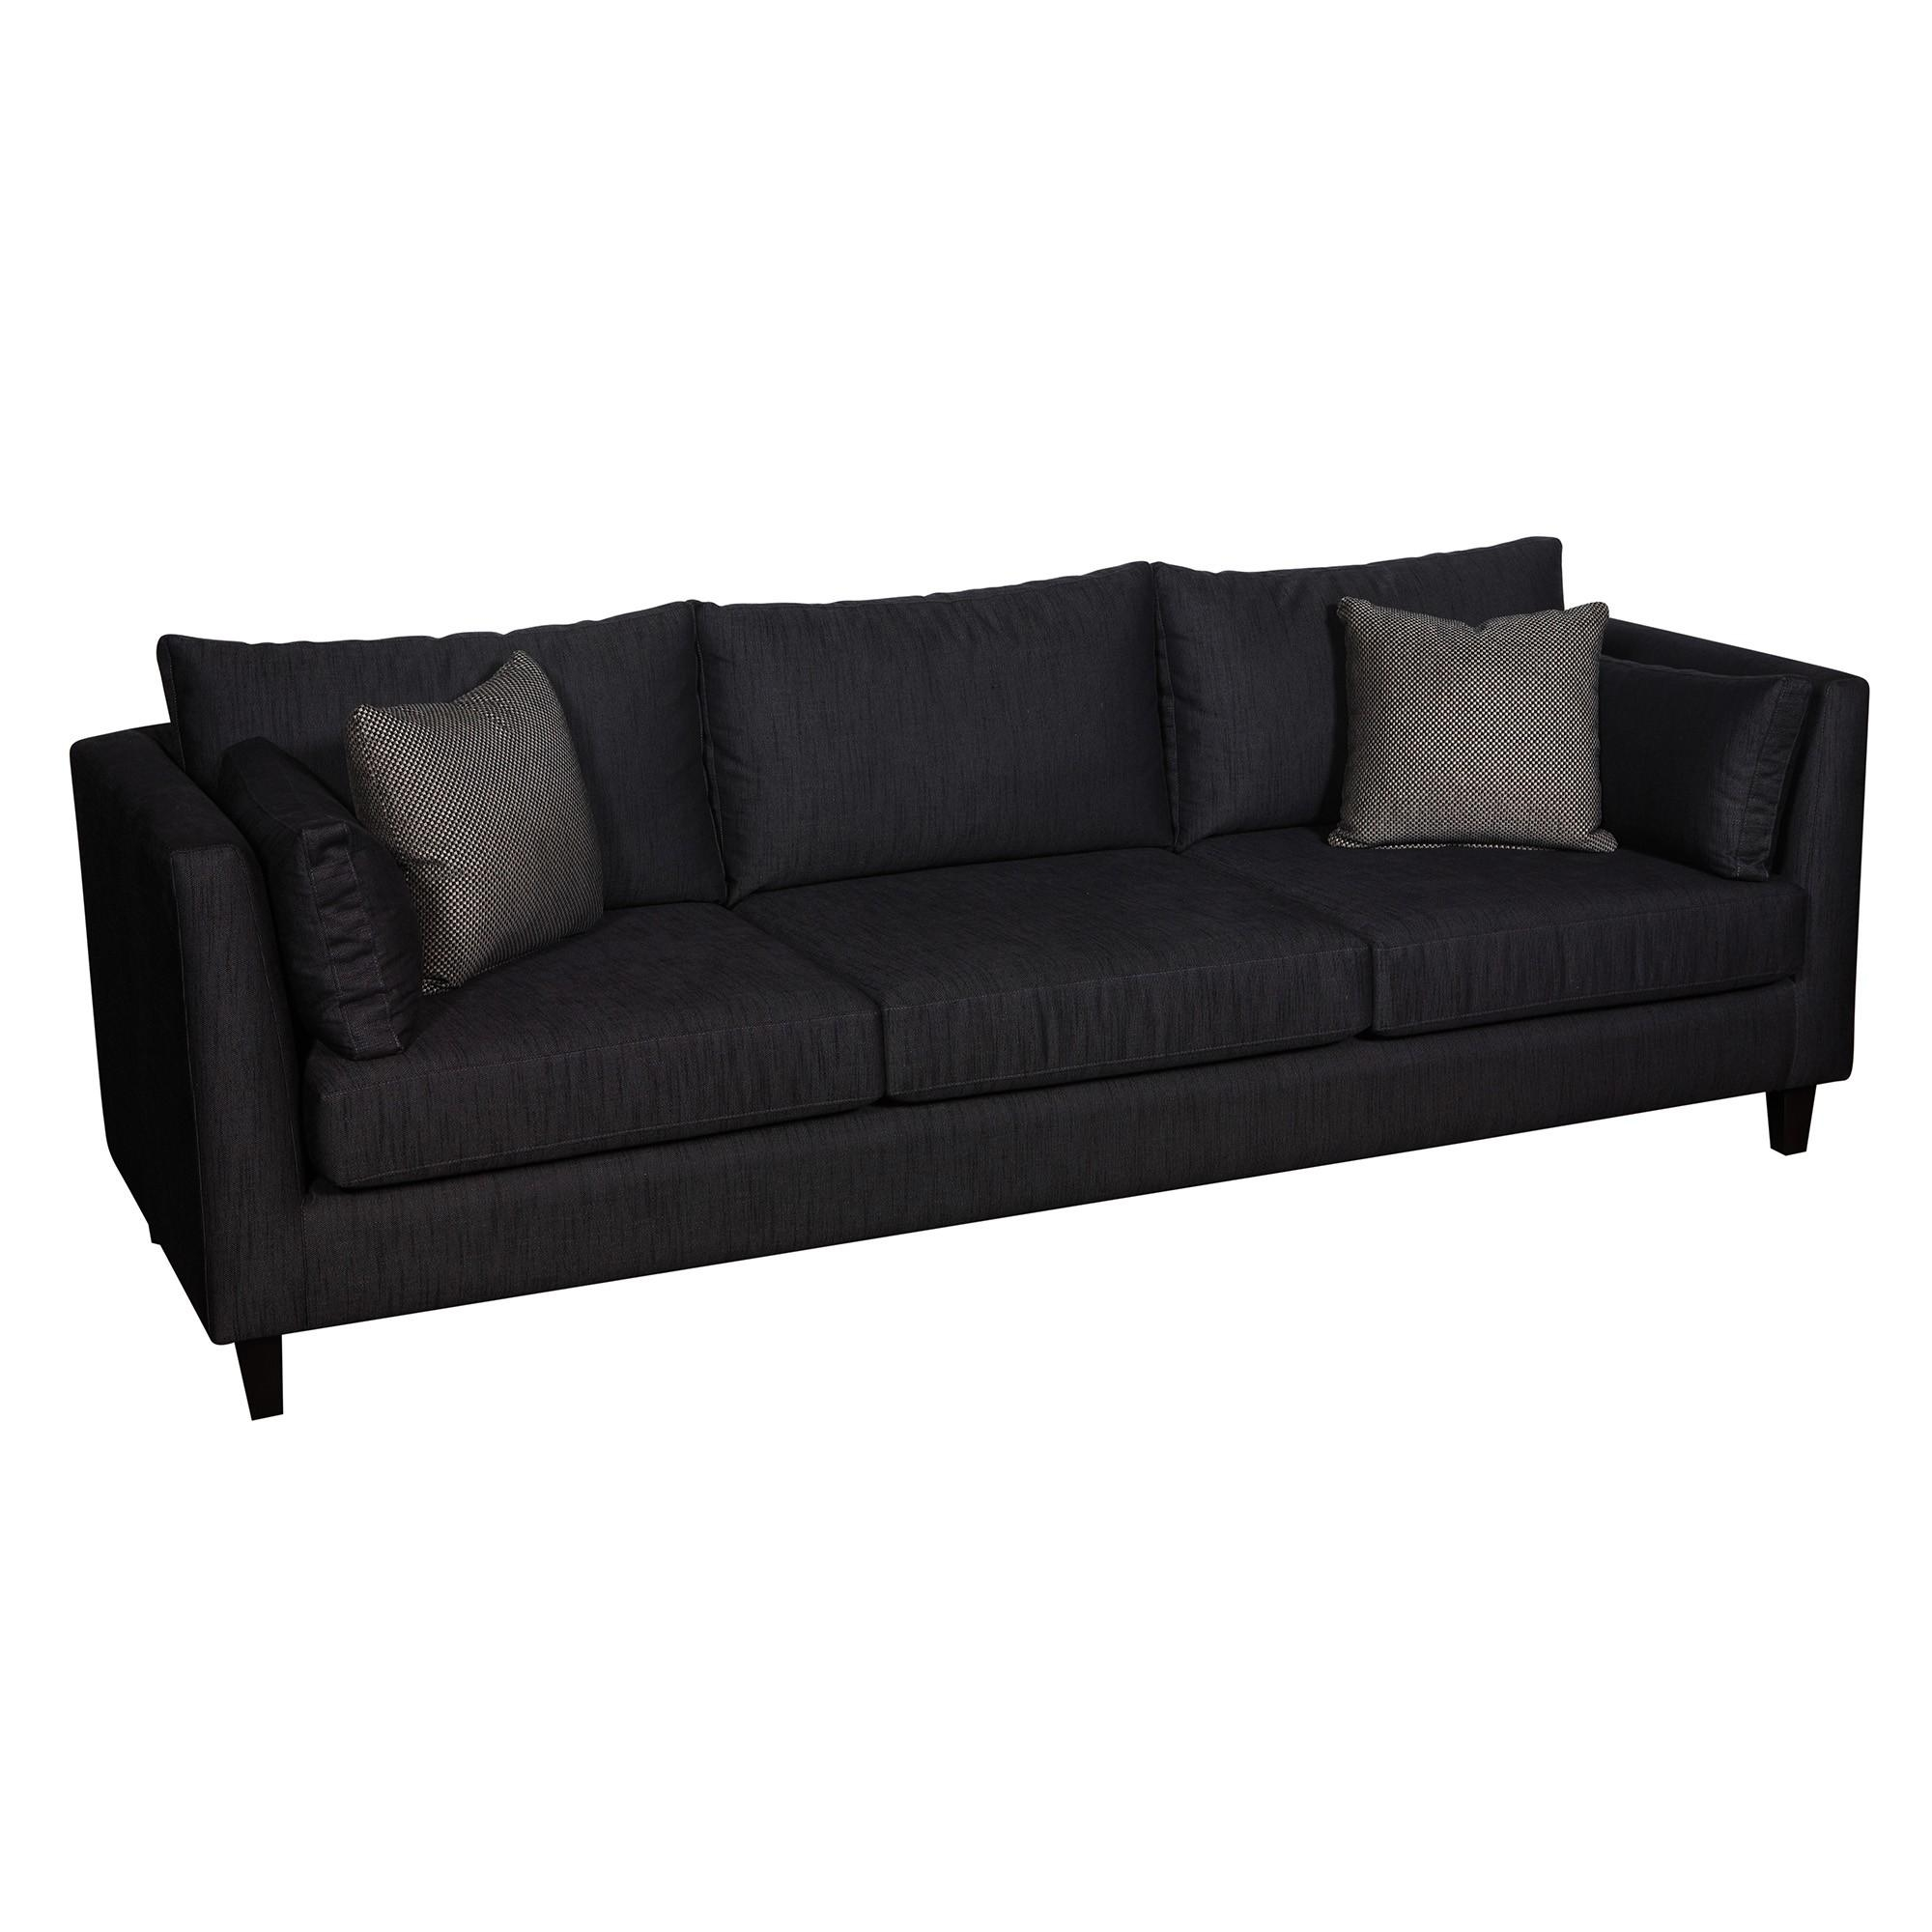 Harrison Sofa – Furniture Within Harrison Sofas (View 9 of 20)